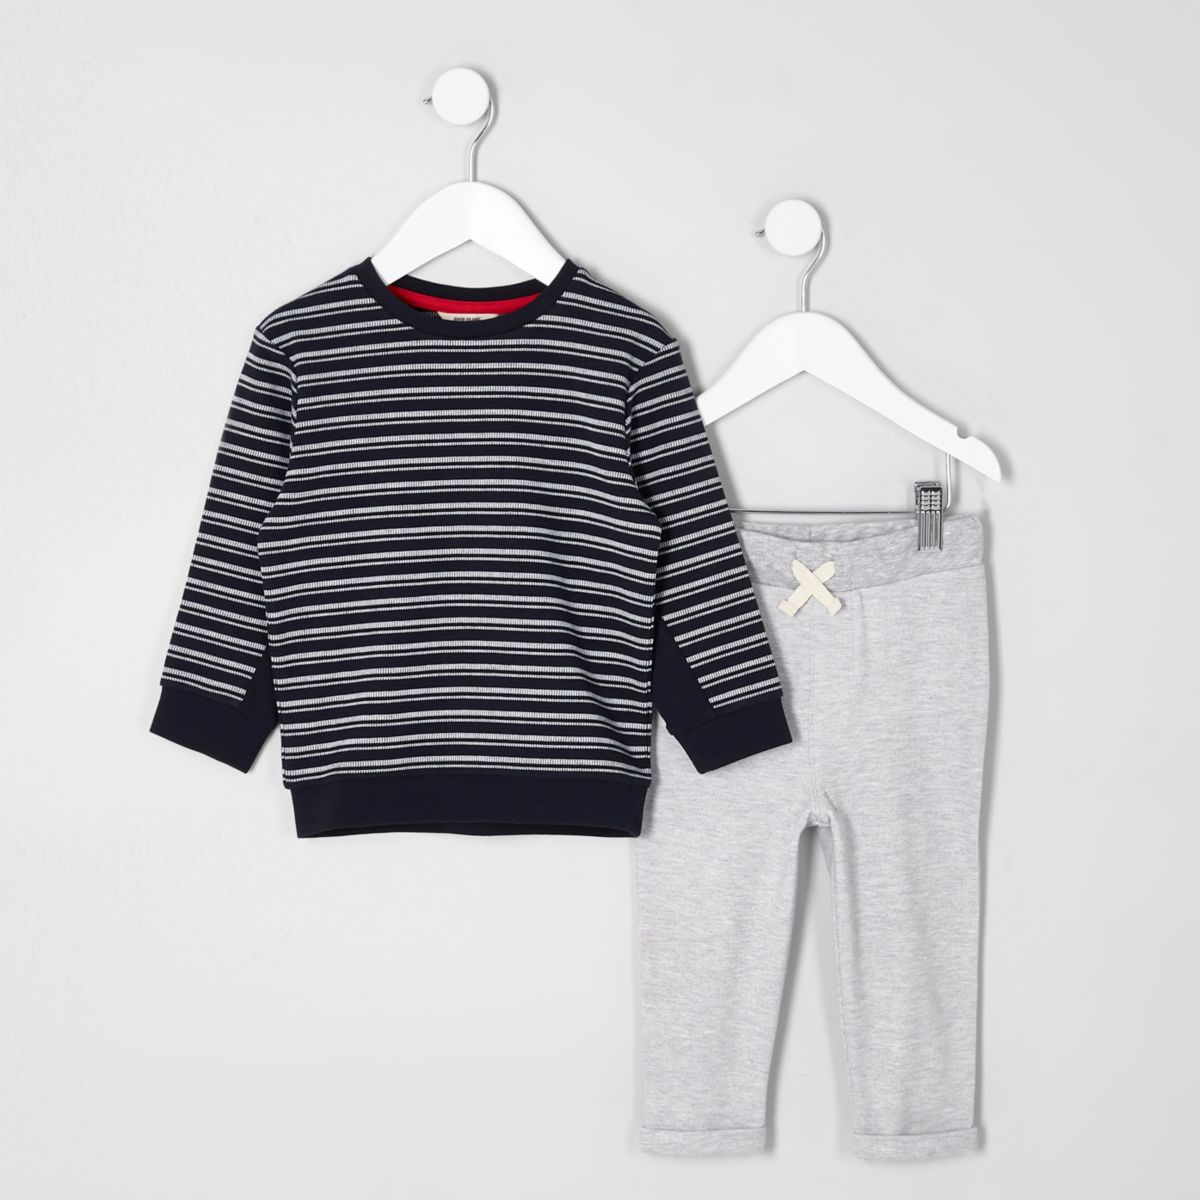 Mini boys navy stripe jumper outfit